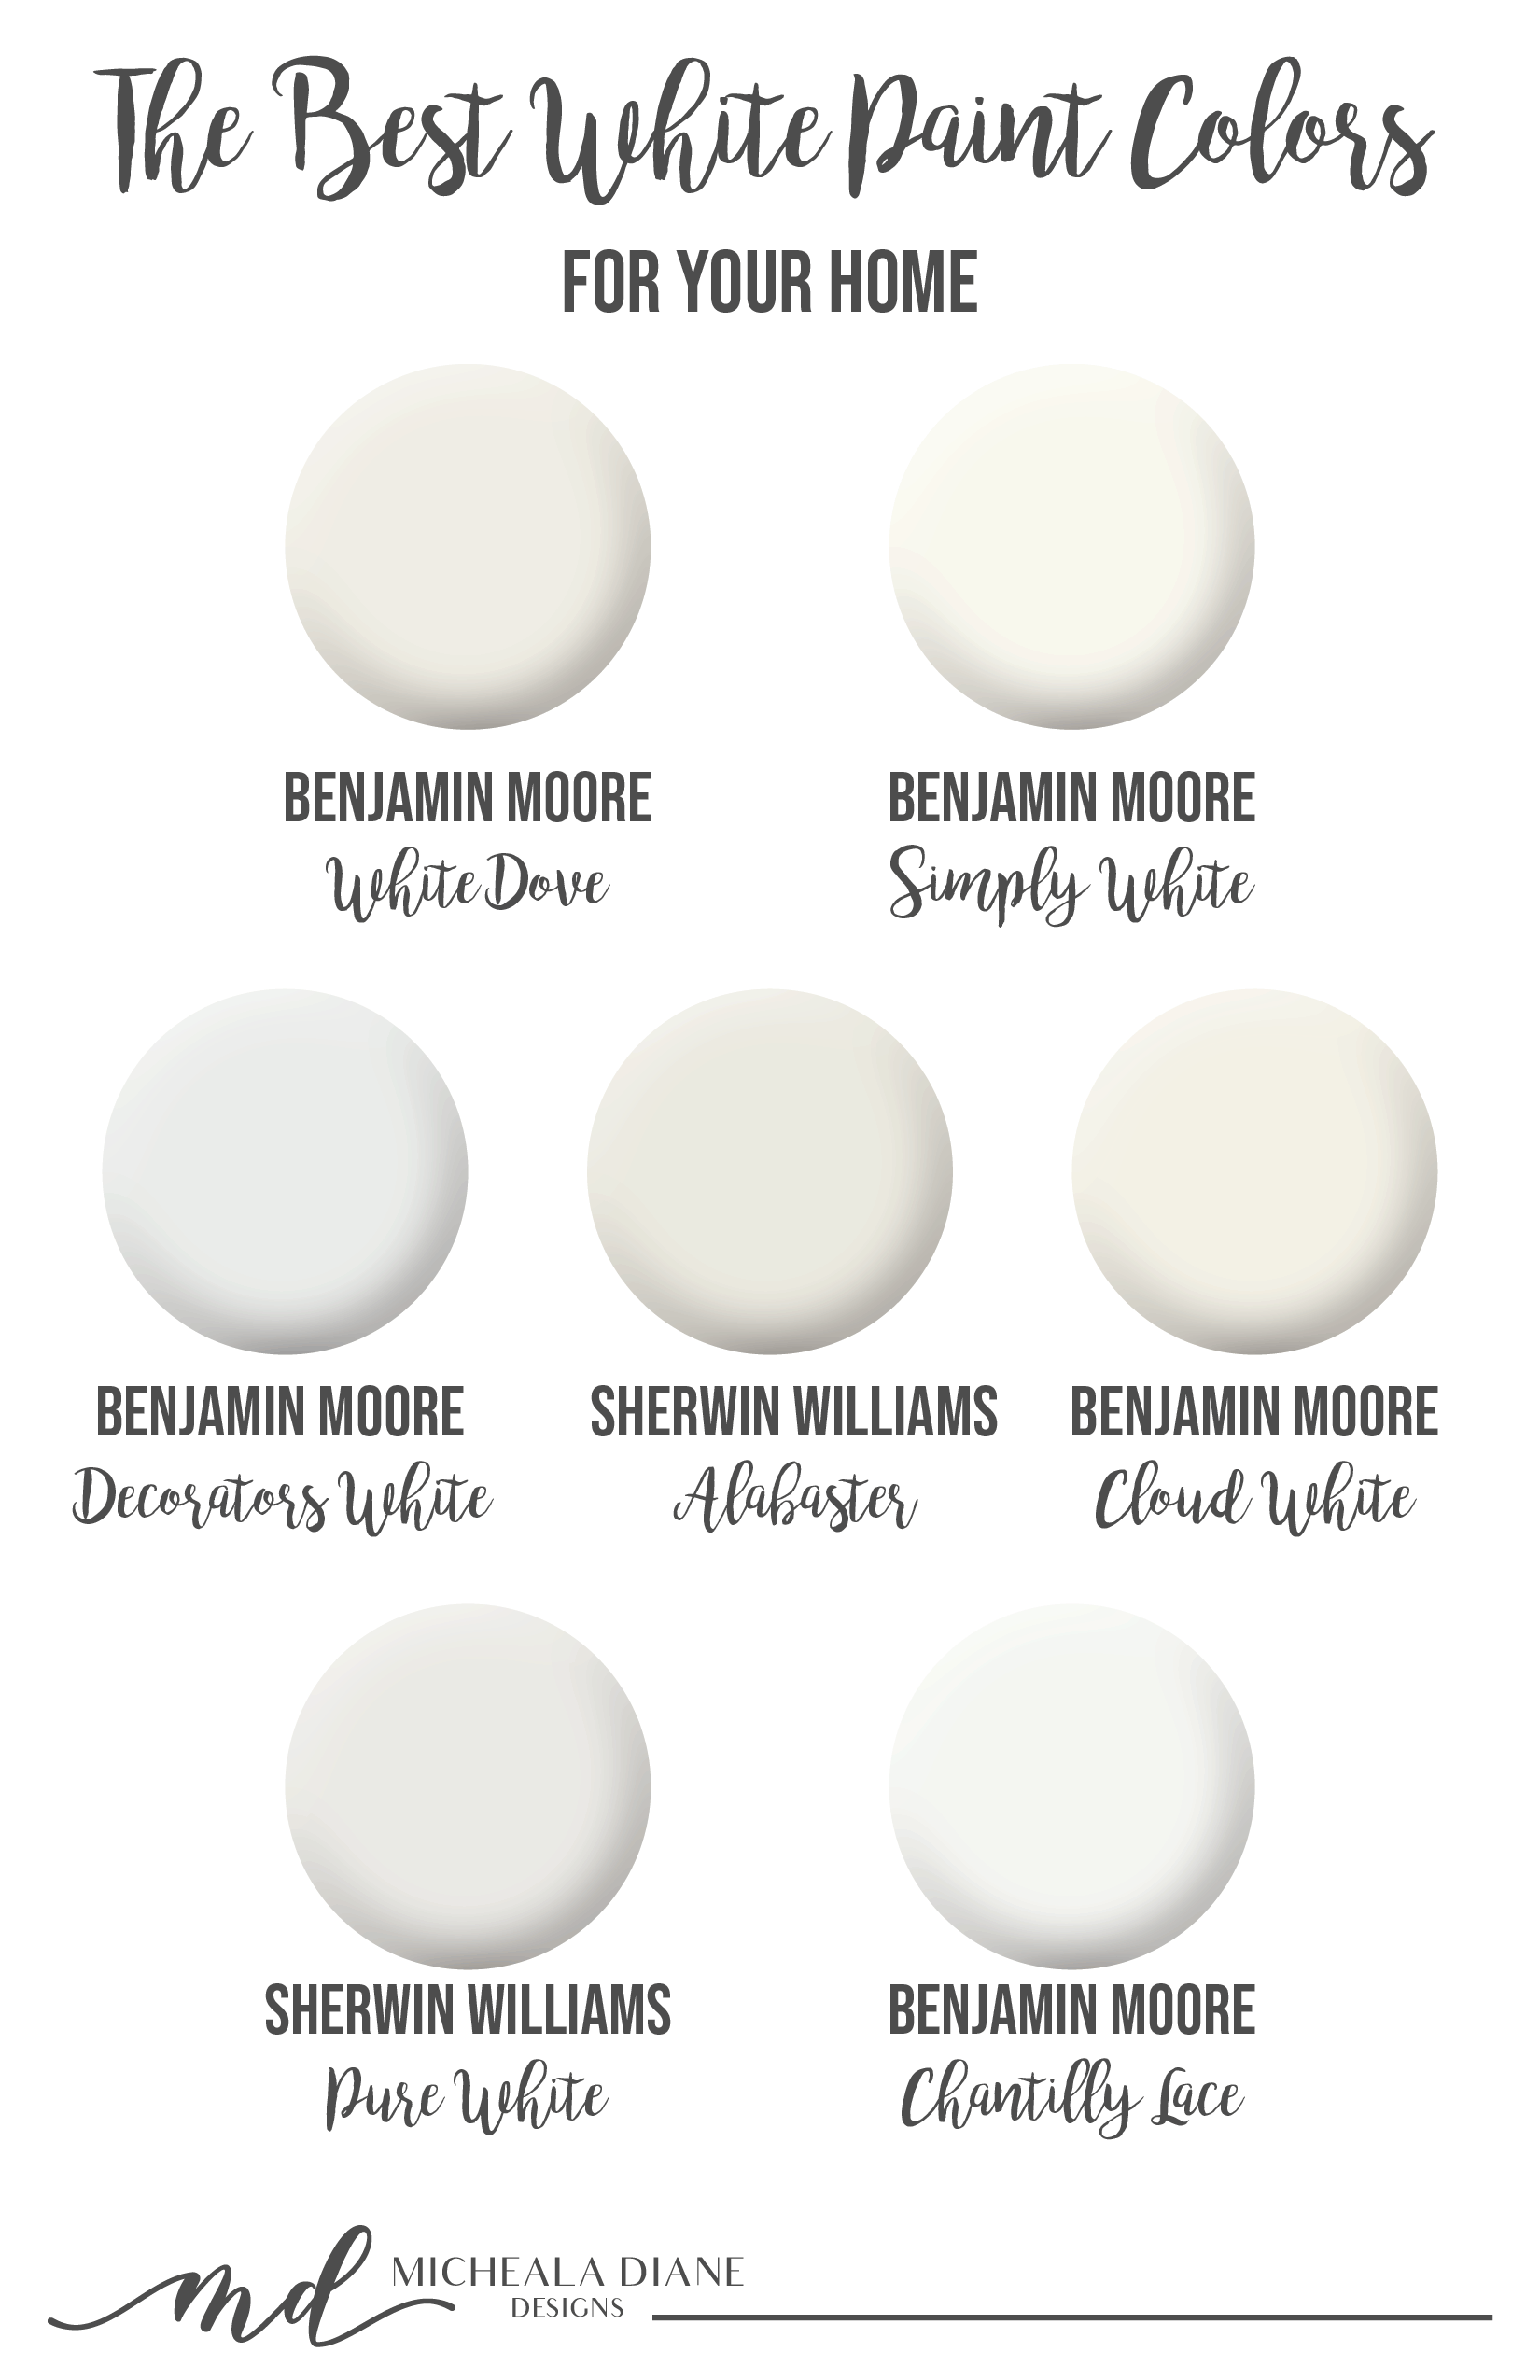 The Best White Paint Colors Micheala Diane Designs,Modern Cottage Bedroom Decor